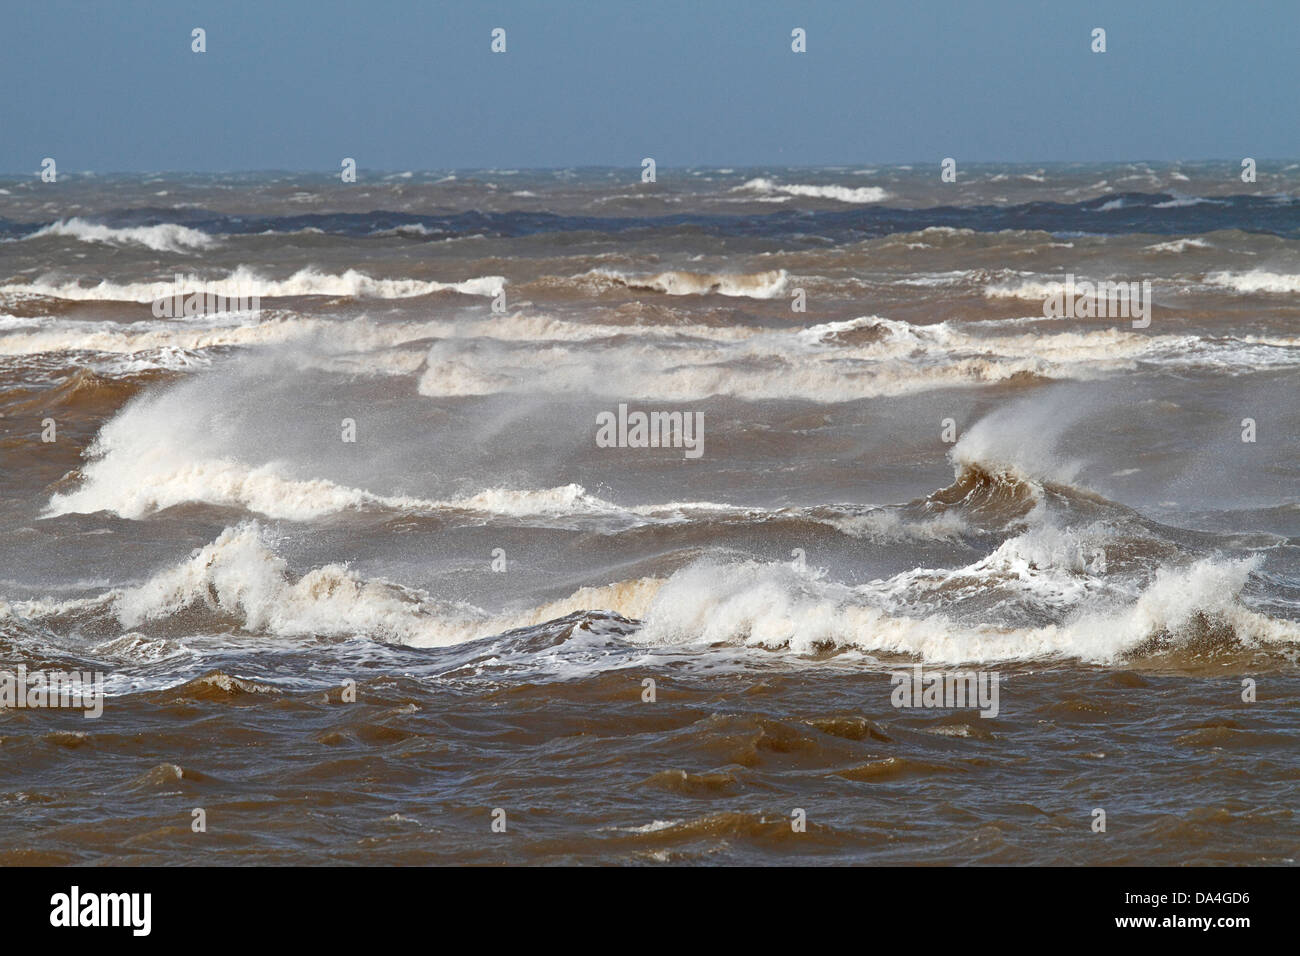 Windblown breakers on a rough sea Liverpool Bay UK September 4862 - Stock Image